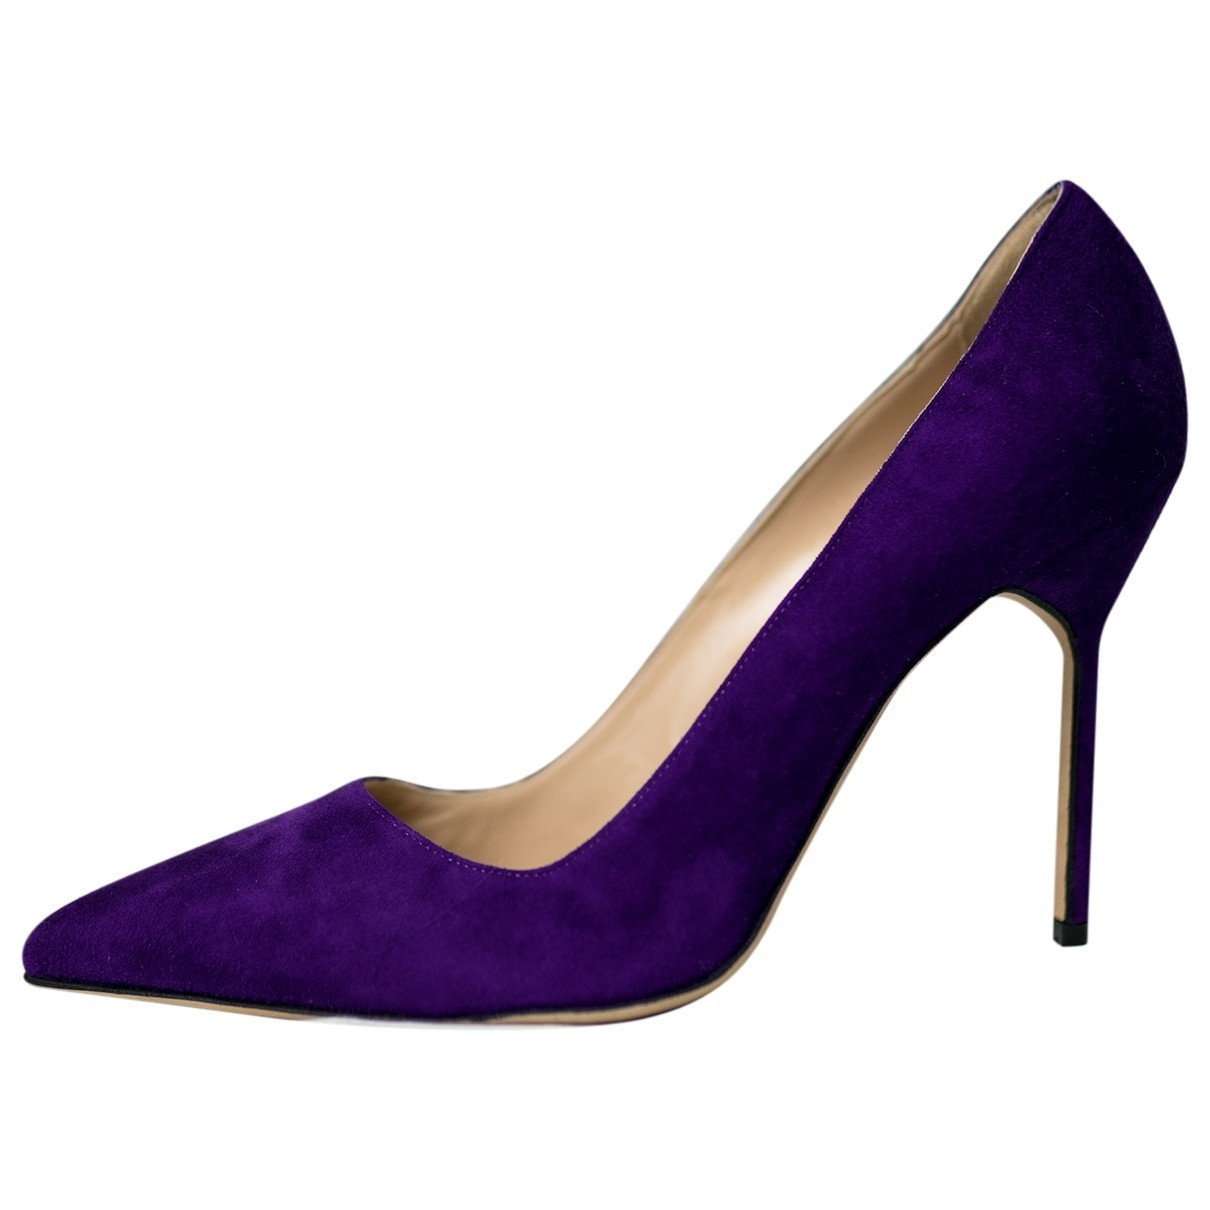 Manolo Blahnik \N Purple Suede Heels for Women 39.5 EU